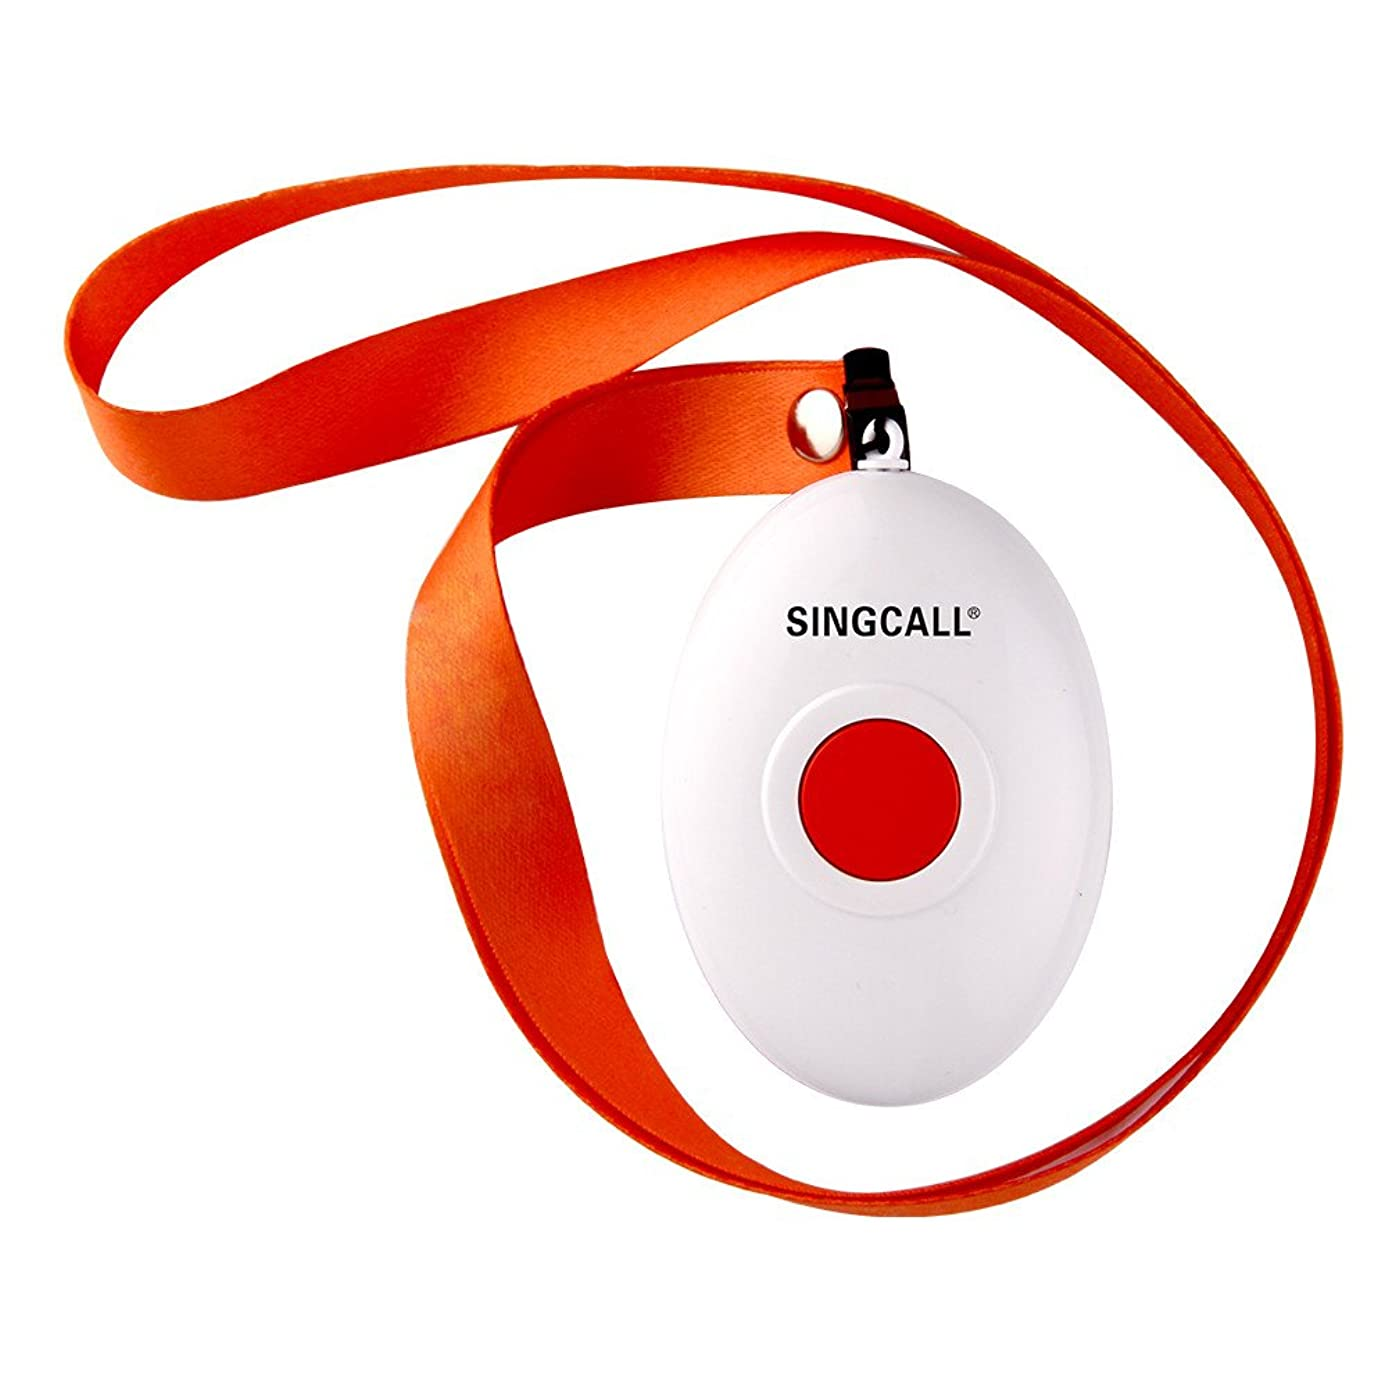 SINGCALL Oval Rounded Shape with Lightweight, Comfortable to Wear, More Convenient, Fit for Old, Patients Children, Suitable to Patrol Officers' Calling, One-button Pager(APE160) Can't Be Used Alone!!